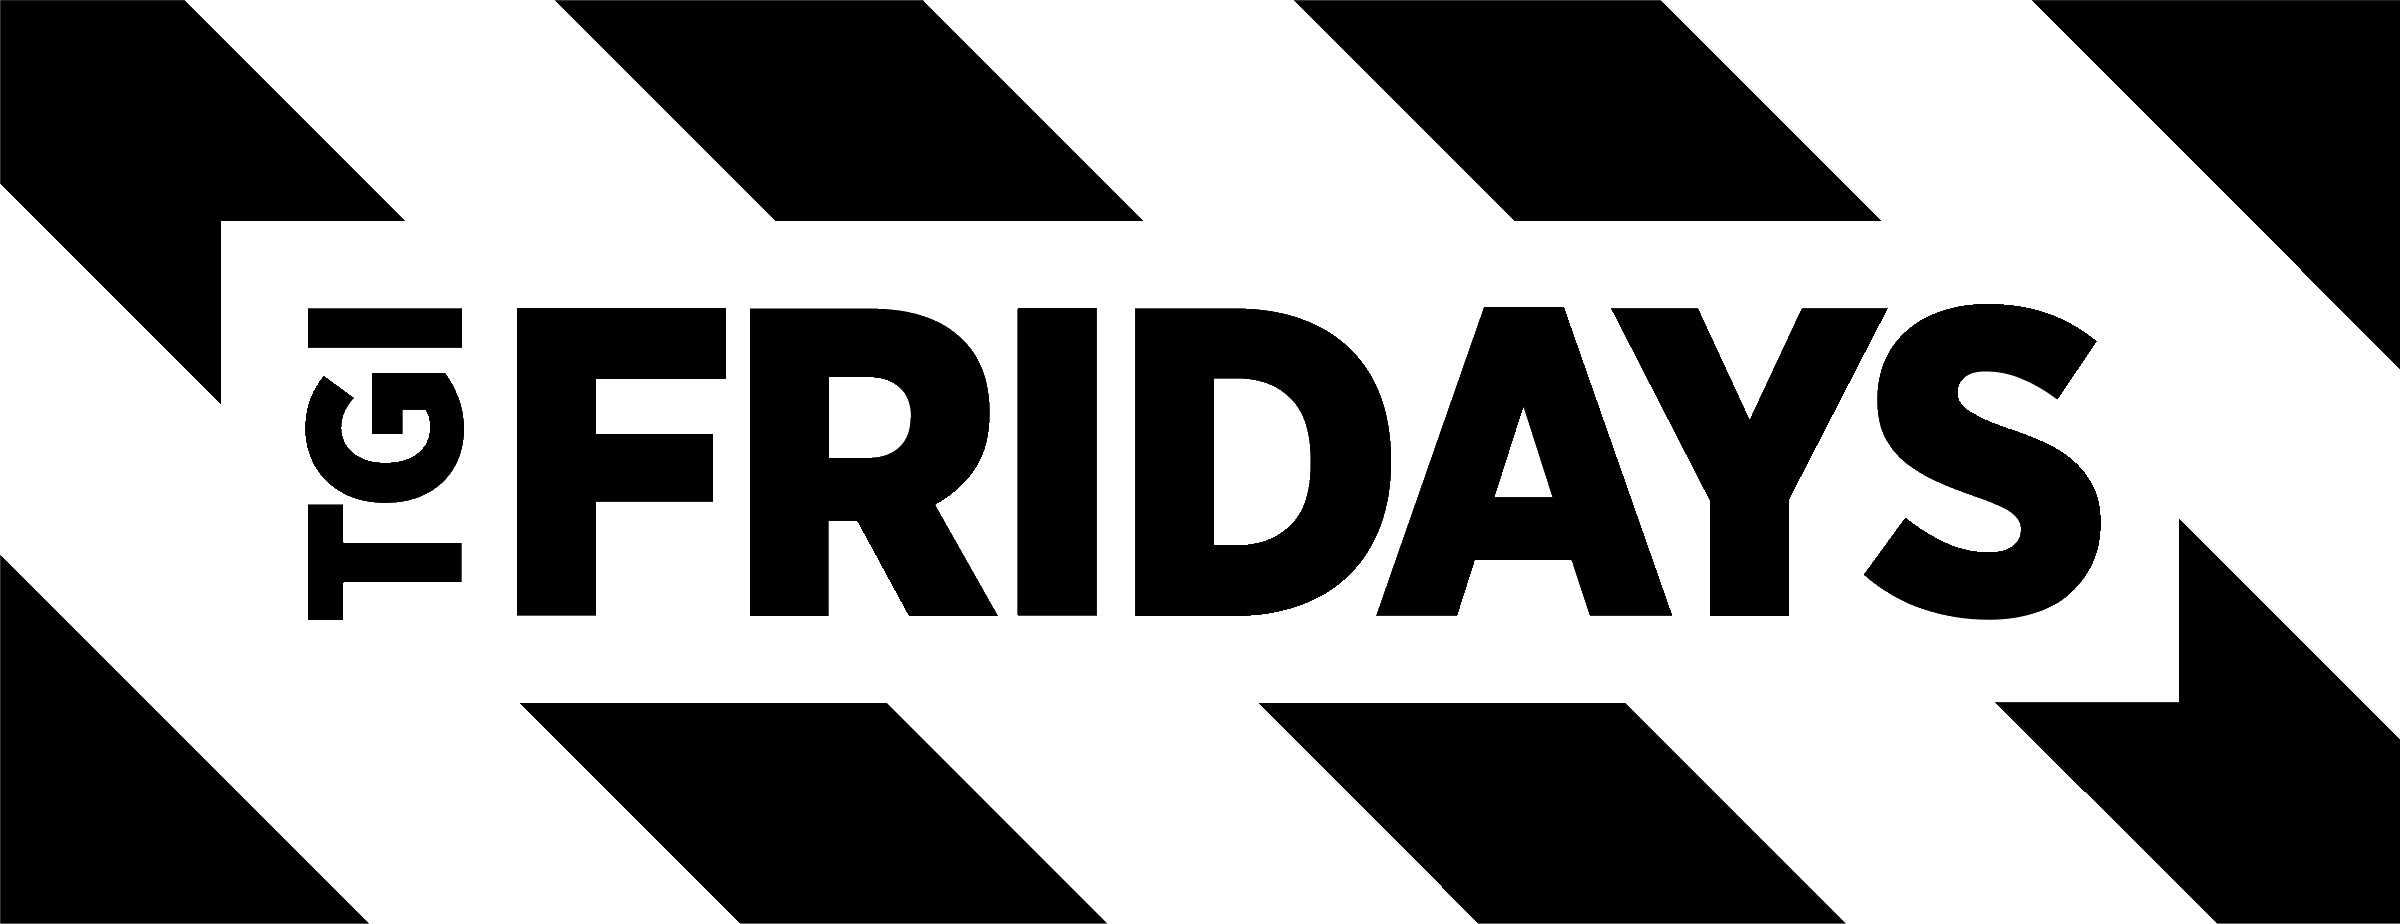 Tgi Fridays Logo Black And White - T.g.i. Friday's (2400x924), Png Download